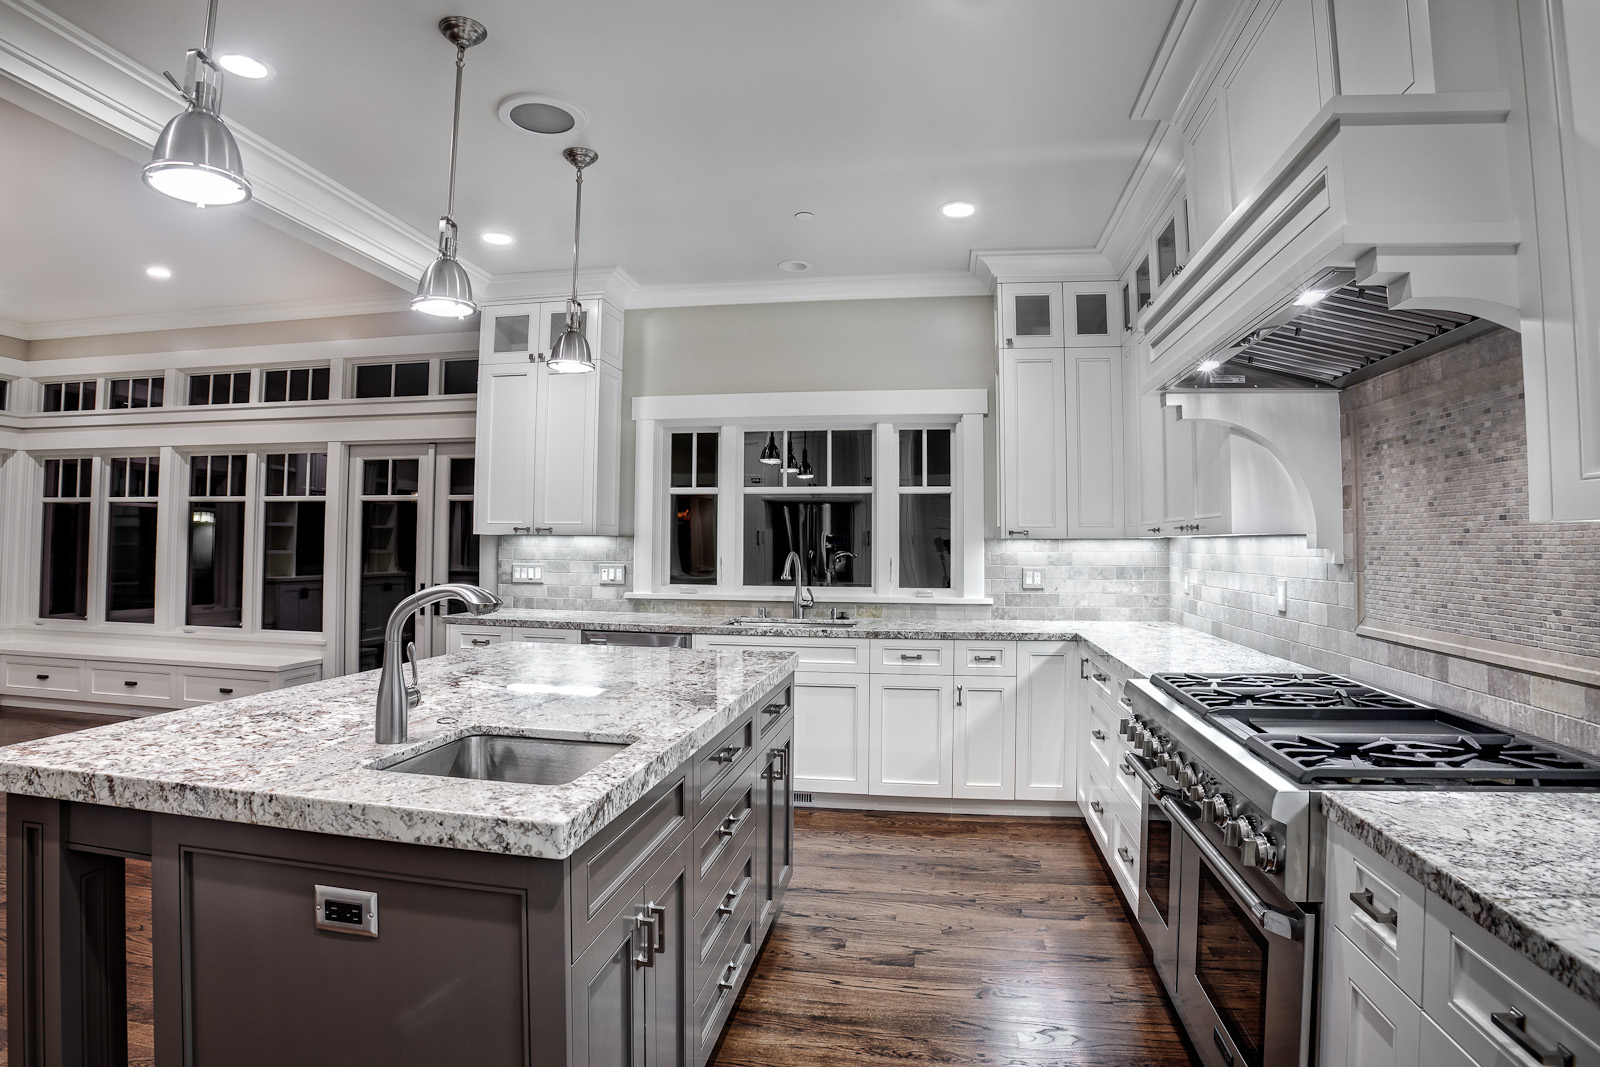 Kashmir White Granite Countertops Showcasing Striking Interior